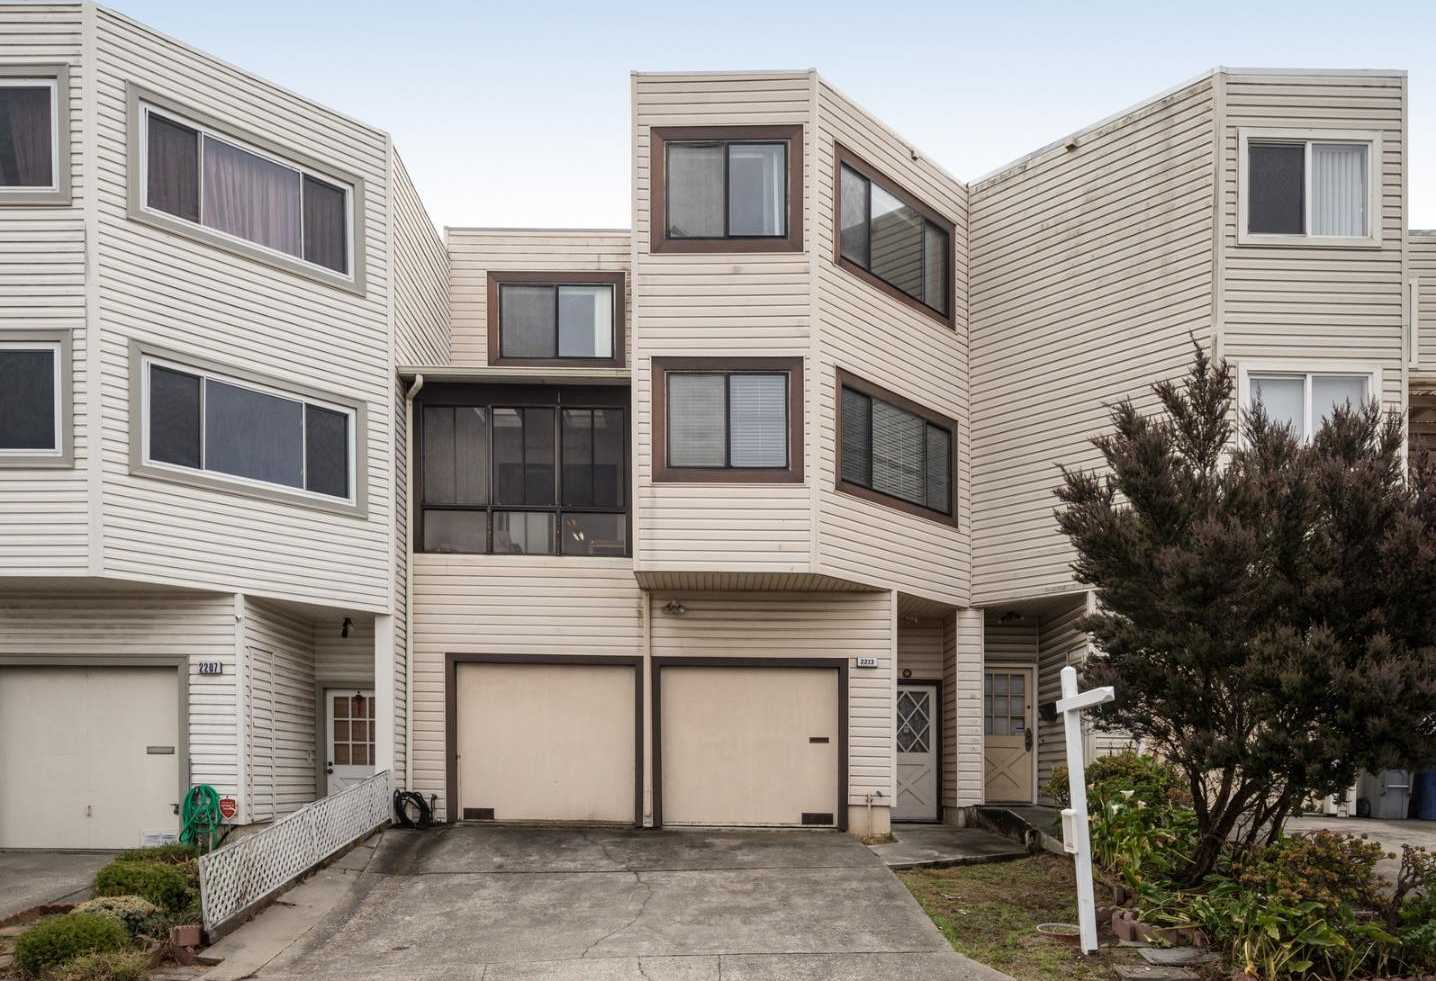 $988,888 - 4Br/2Ba -  for Sale in South San Francisco